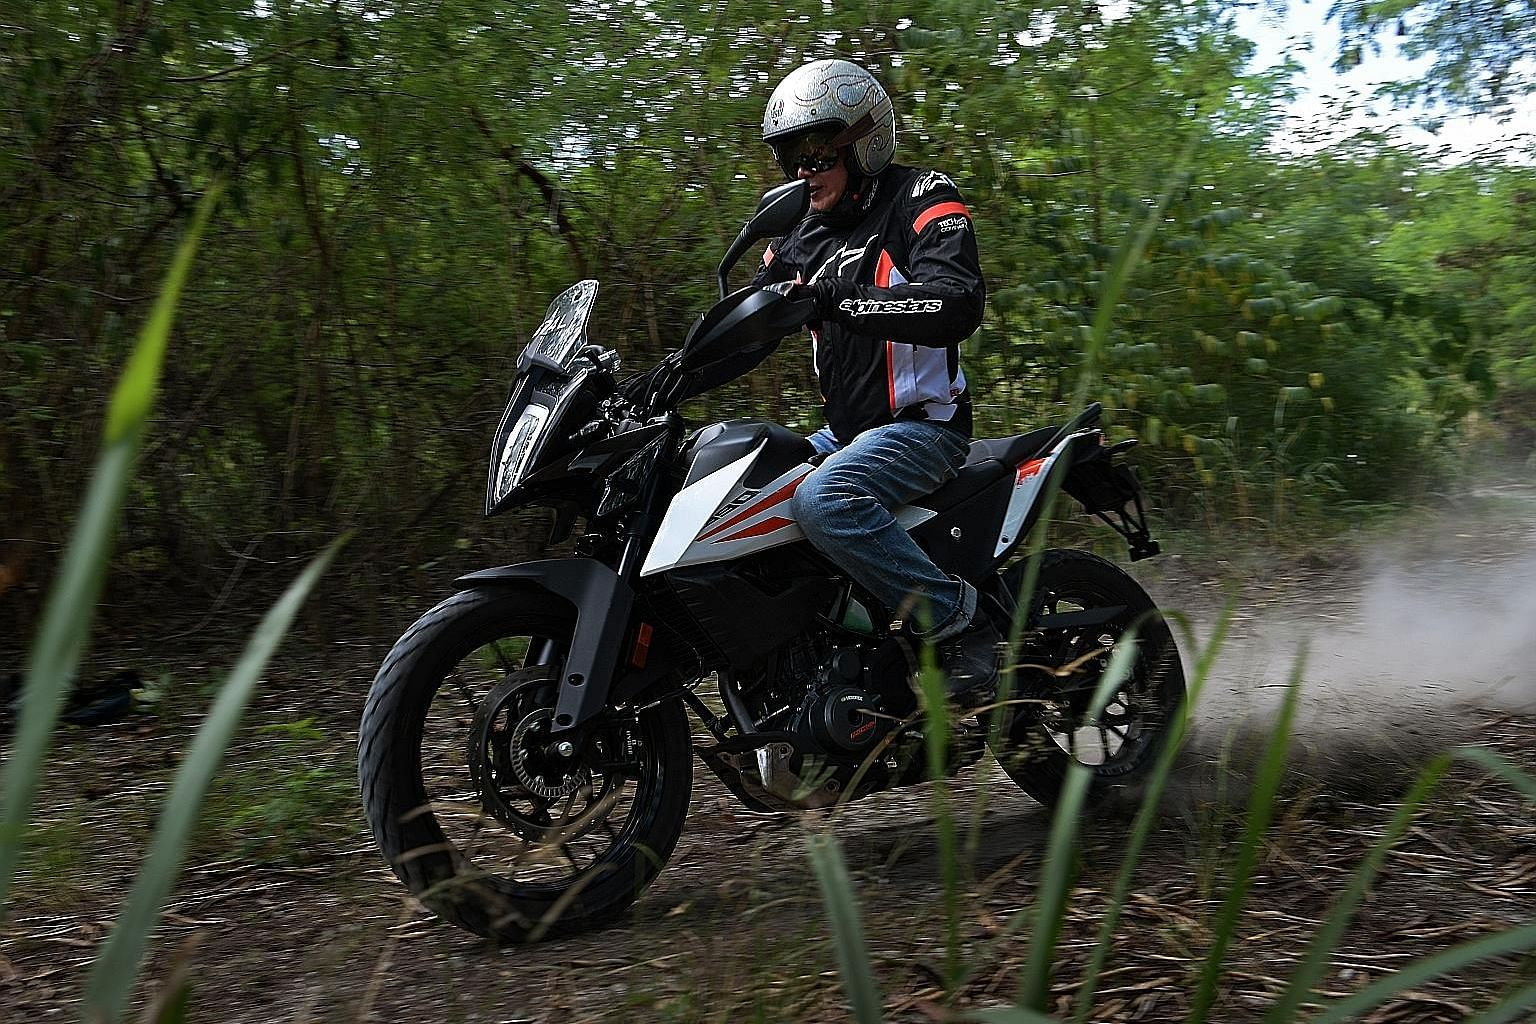 The 373cc KTM 390 Adventure can keep up on gravel or logging trails. Best of all, you do not have to manhandle it because of its 158kg dry weight and modest performance figures compared with more powerful motorcycles..